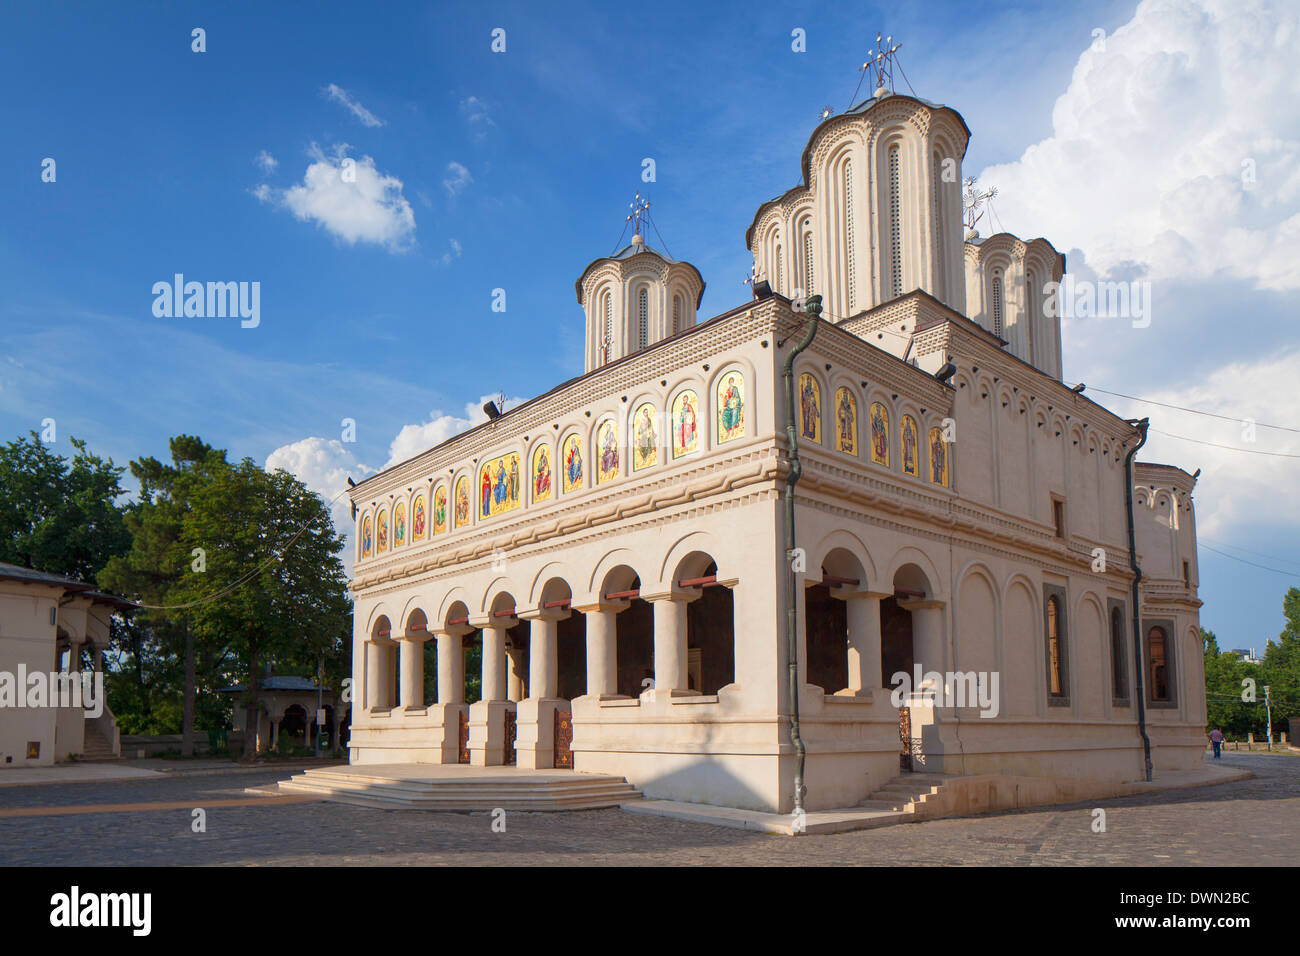 Patriarchal Cathedral, Bucharest, Romania, Europe - Stock Image